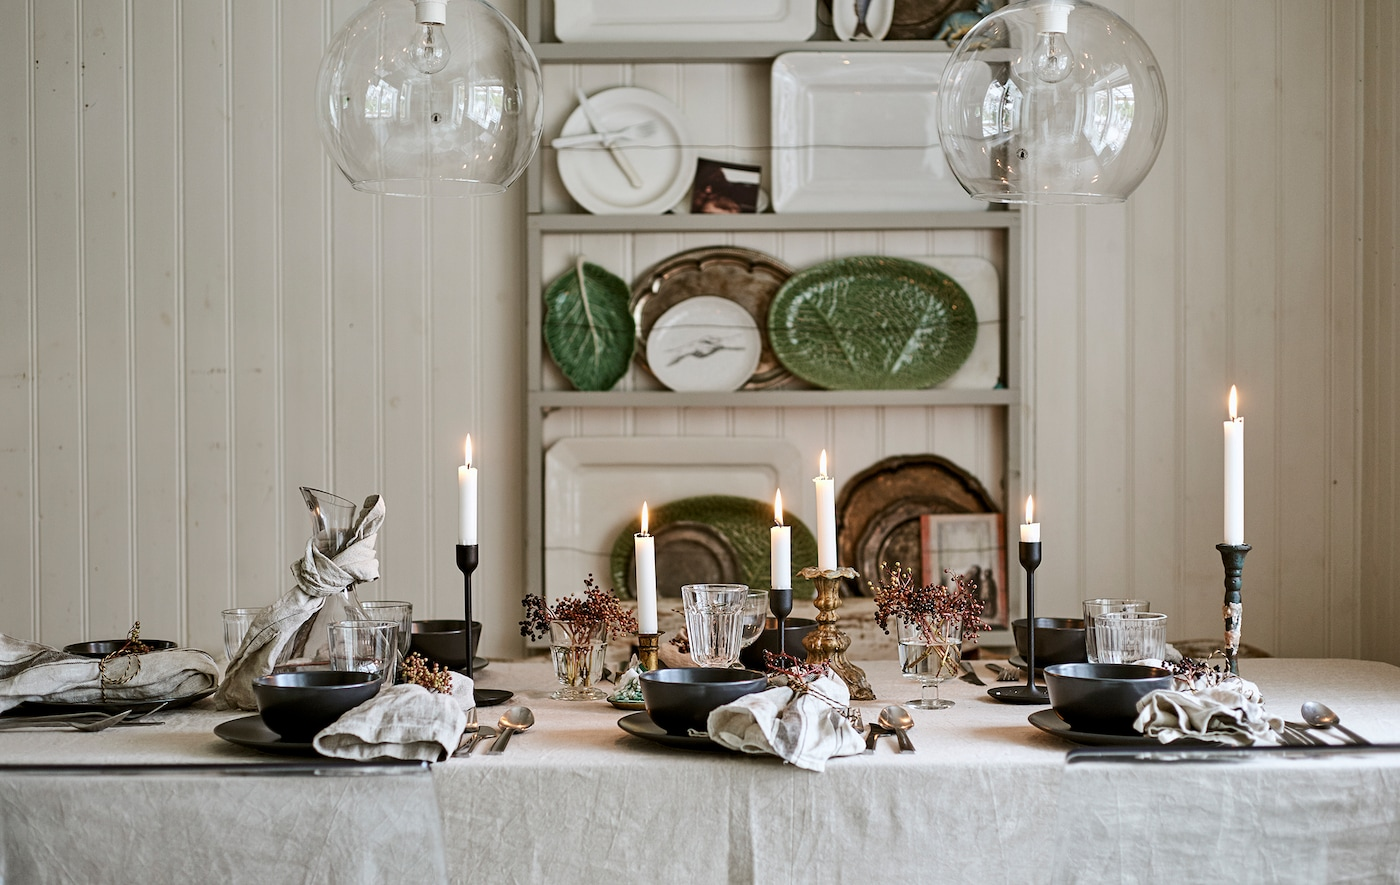 A dining table set for a festive meal with linen table cloth, candles, glassware and place settings with decorated napkins.